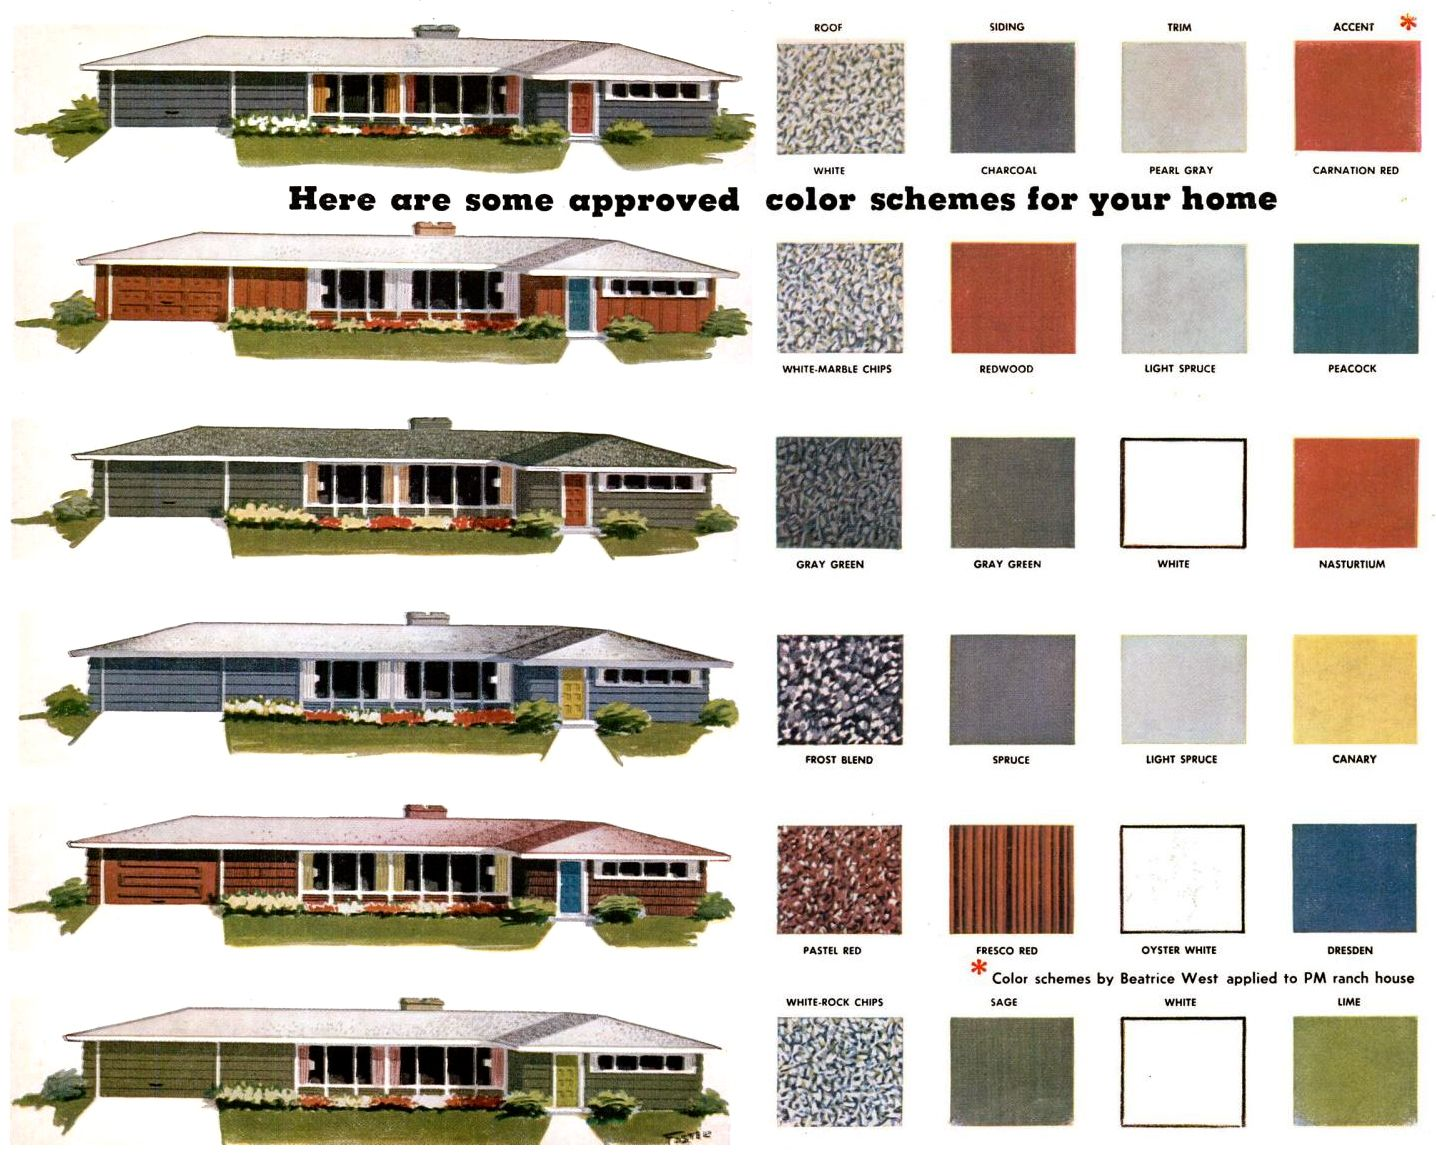 Groovy 1000 Images About Exterior Paint Ideas On Pinterest Green Largest Home Design Picture Inspirations Pitcheantrous